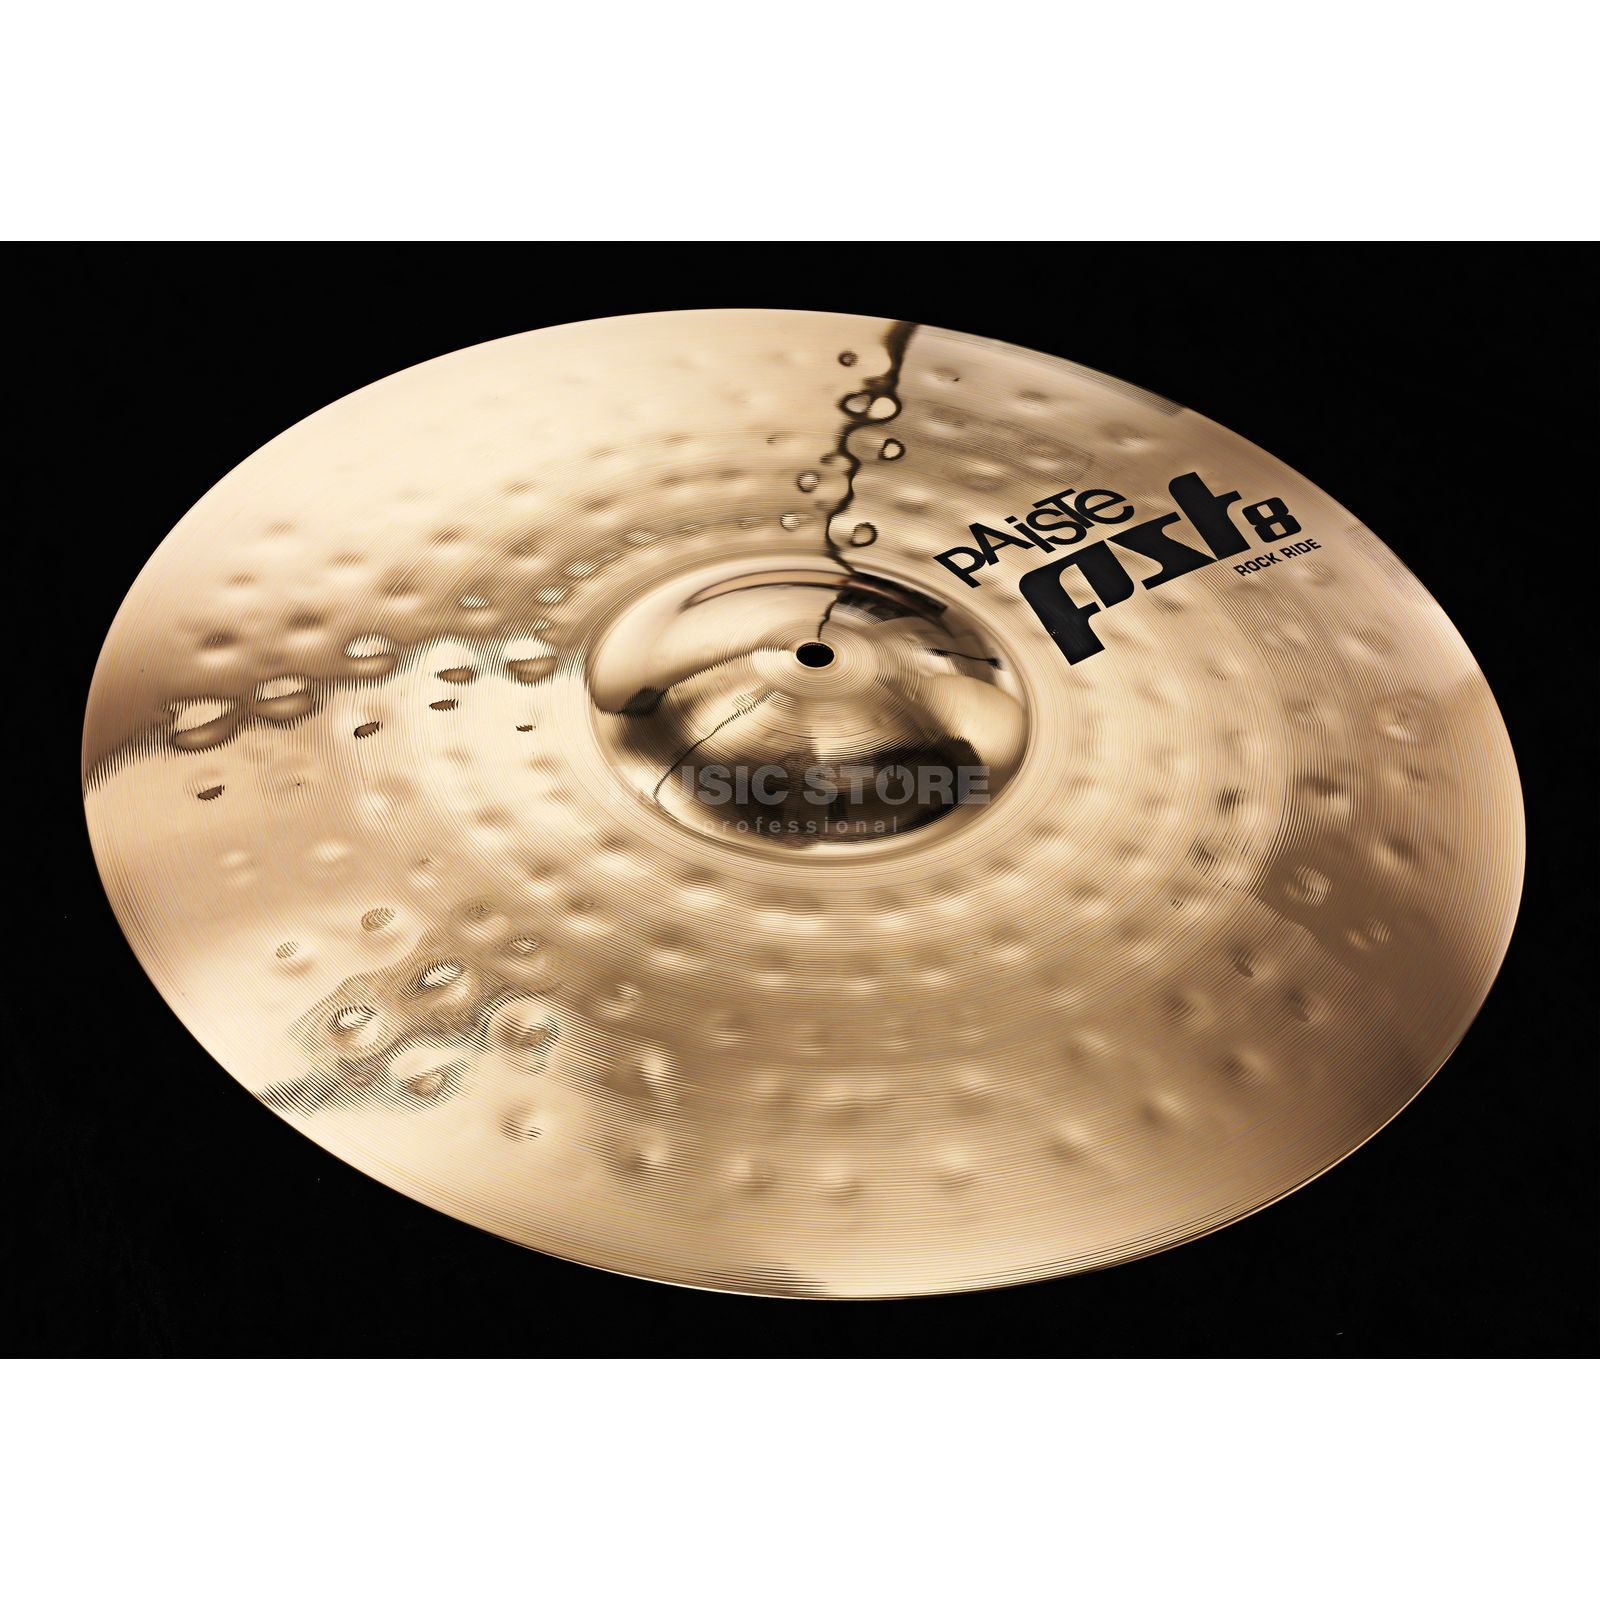 "Paiste PST8 Rock Ride 22"", Reflector Finish Product Image"